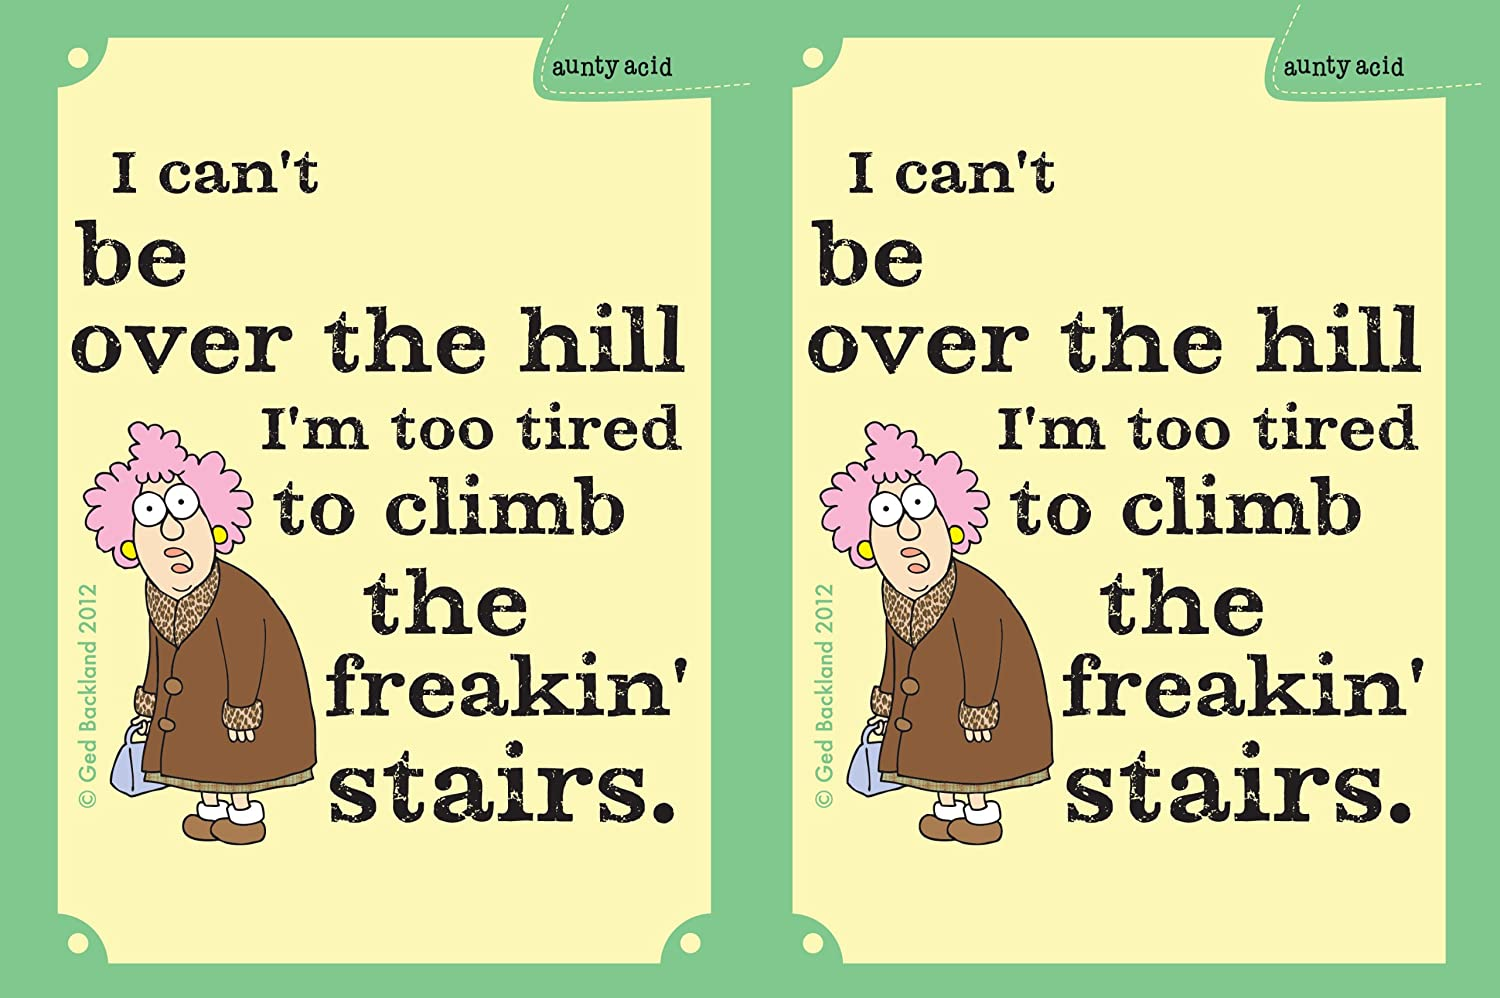 Tree-Free Greetings sg23764 Hilarious Aunty Acid Over the Hill by The Backland Studio Ltd 16 Oz Sip N Go Stainless Steel Lined Tumbler